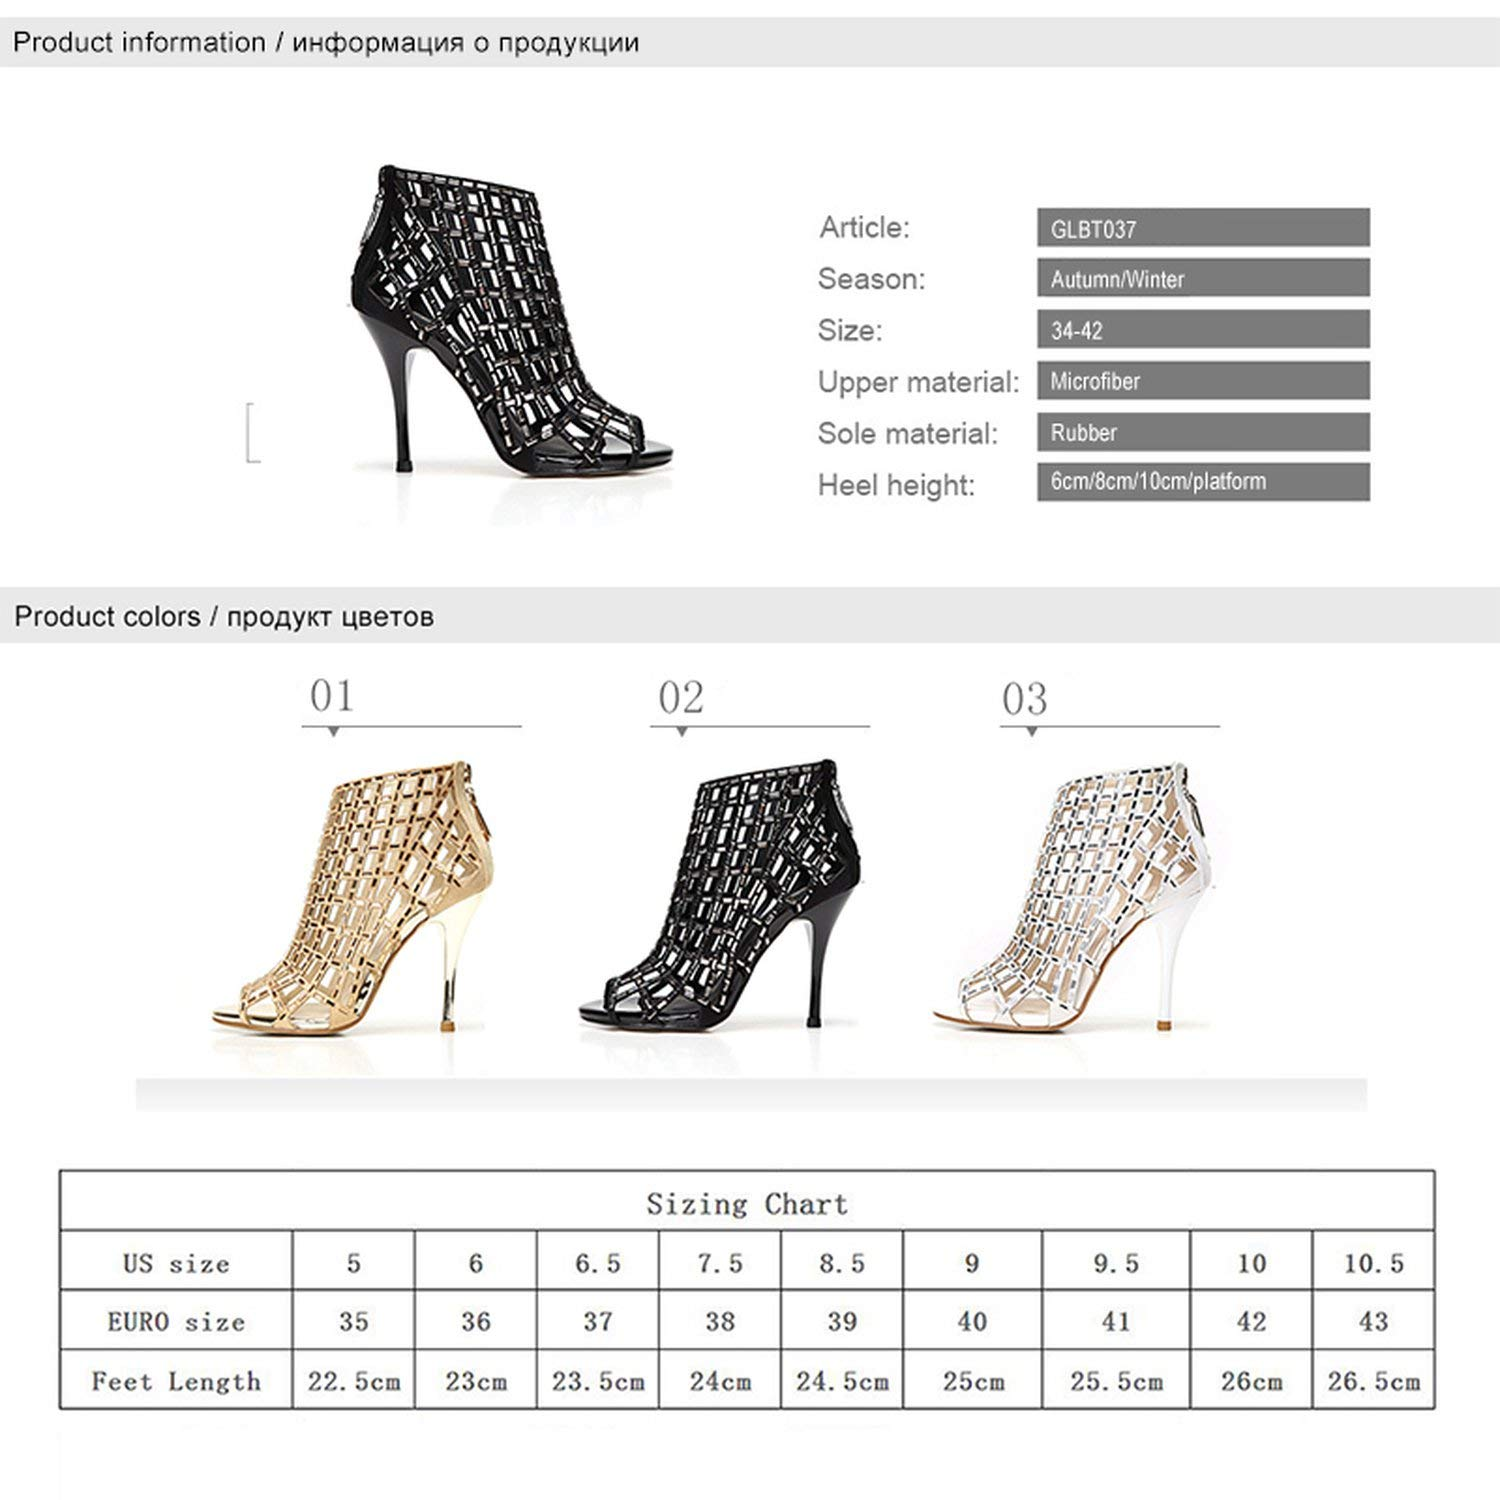 I Need-You Woman Boots Ankle Summer Shoes High Heels Brand Rhinestone Women Wedding Shoes Platform Open Toes Female Sandals Boots Plus Size,Silver Boots 6cm,4